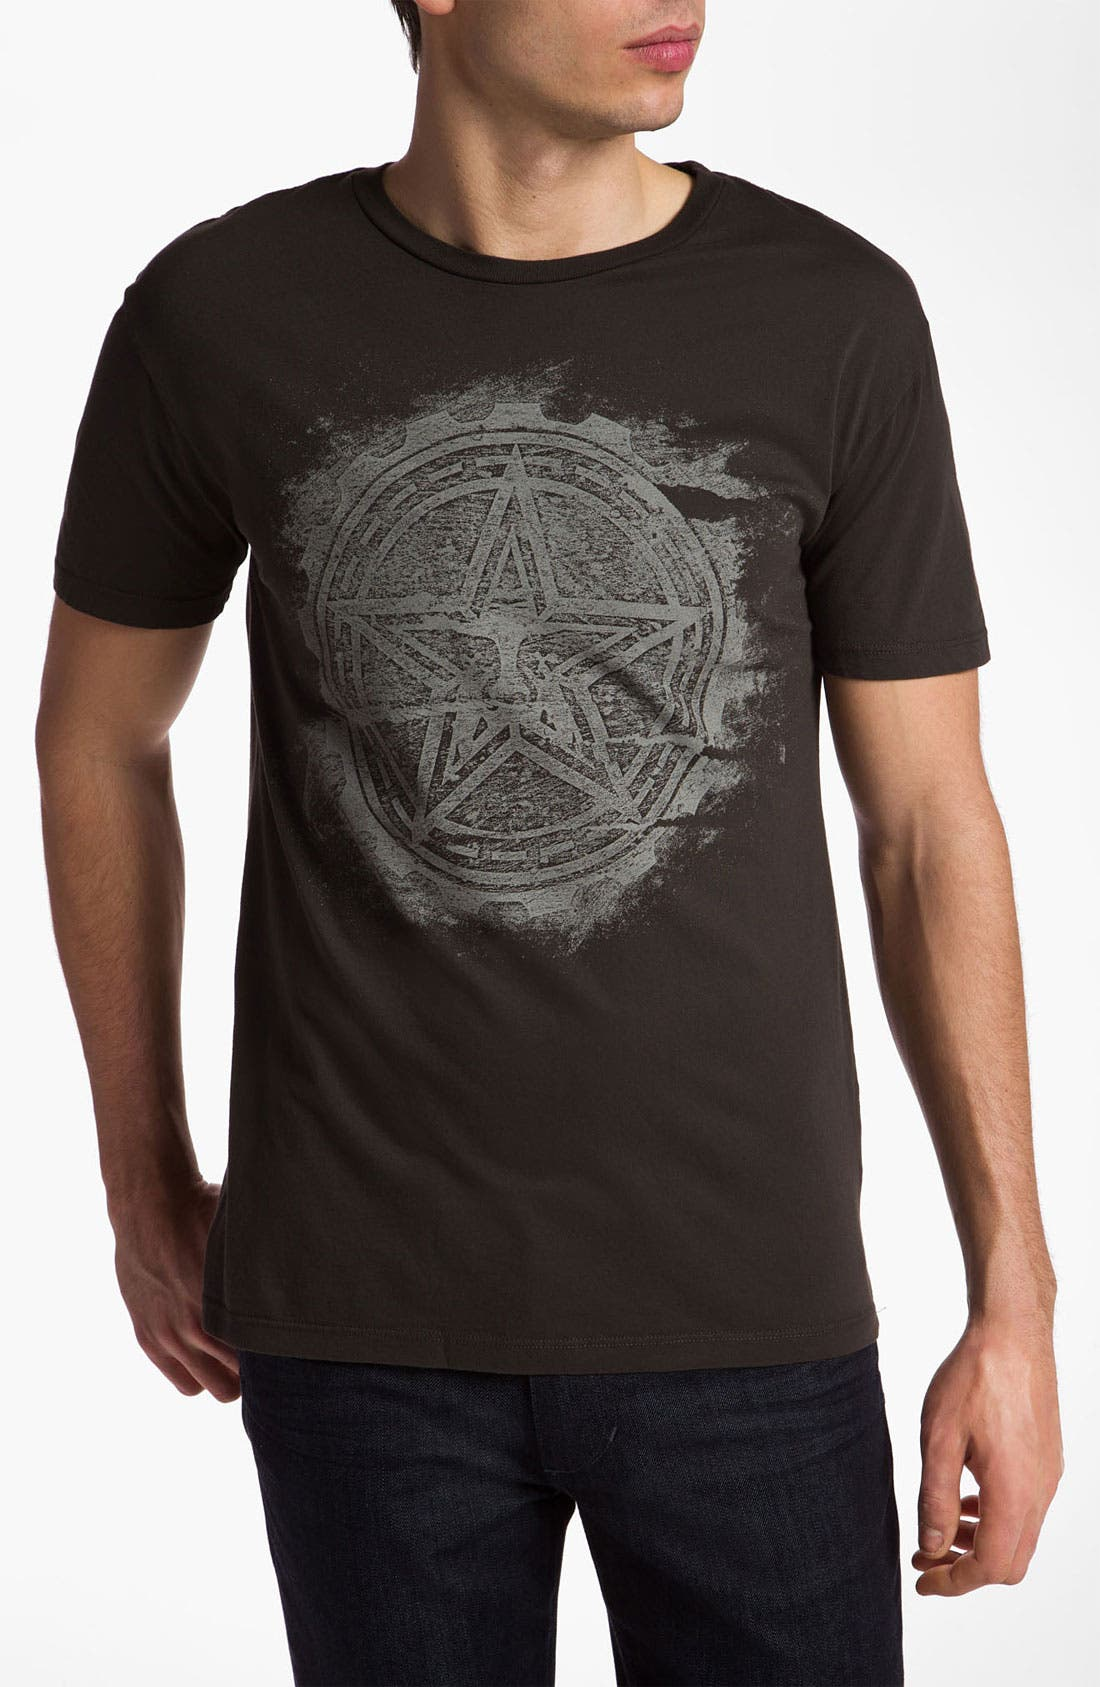 Main Image - Obey 'Trashed Star' Graphic T-Shirt